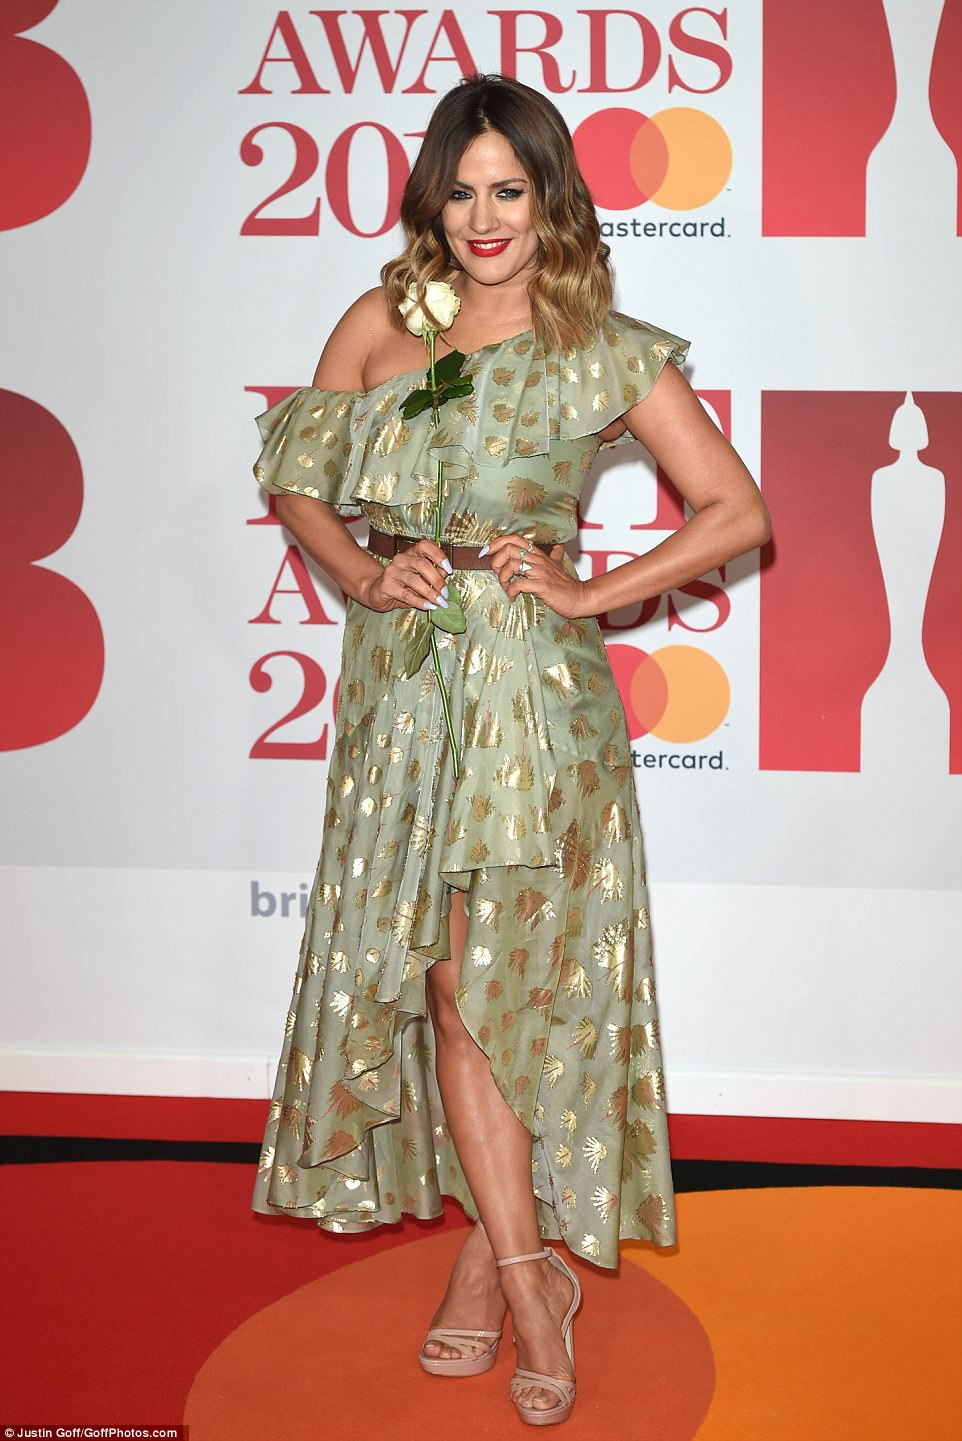 Entrance: Caroline Flack also made a stylish arrival on the red carpet, cladding her lithe figure in a light green dress which boasted a striking gold overlay